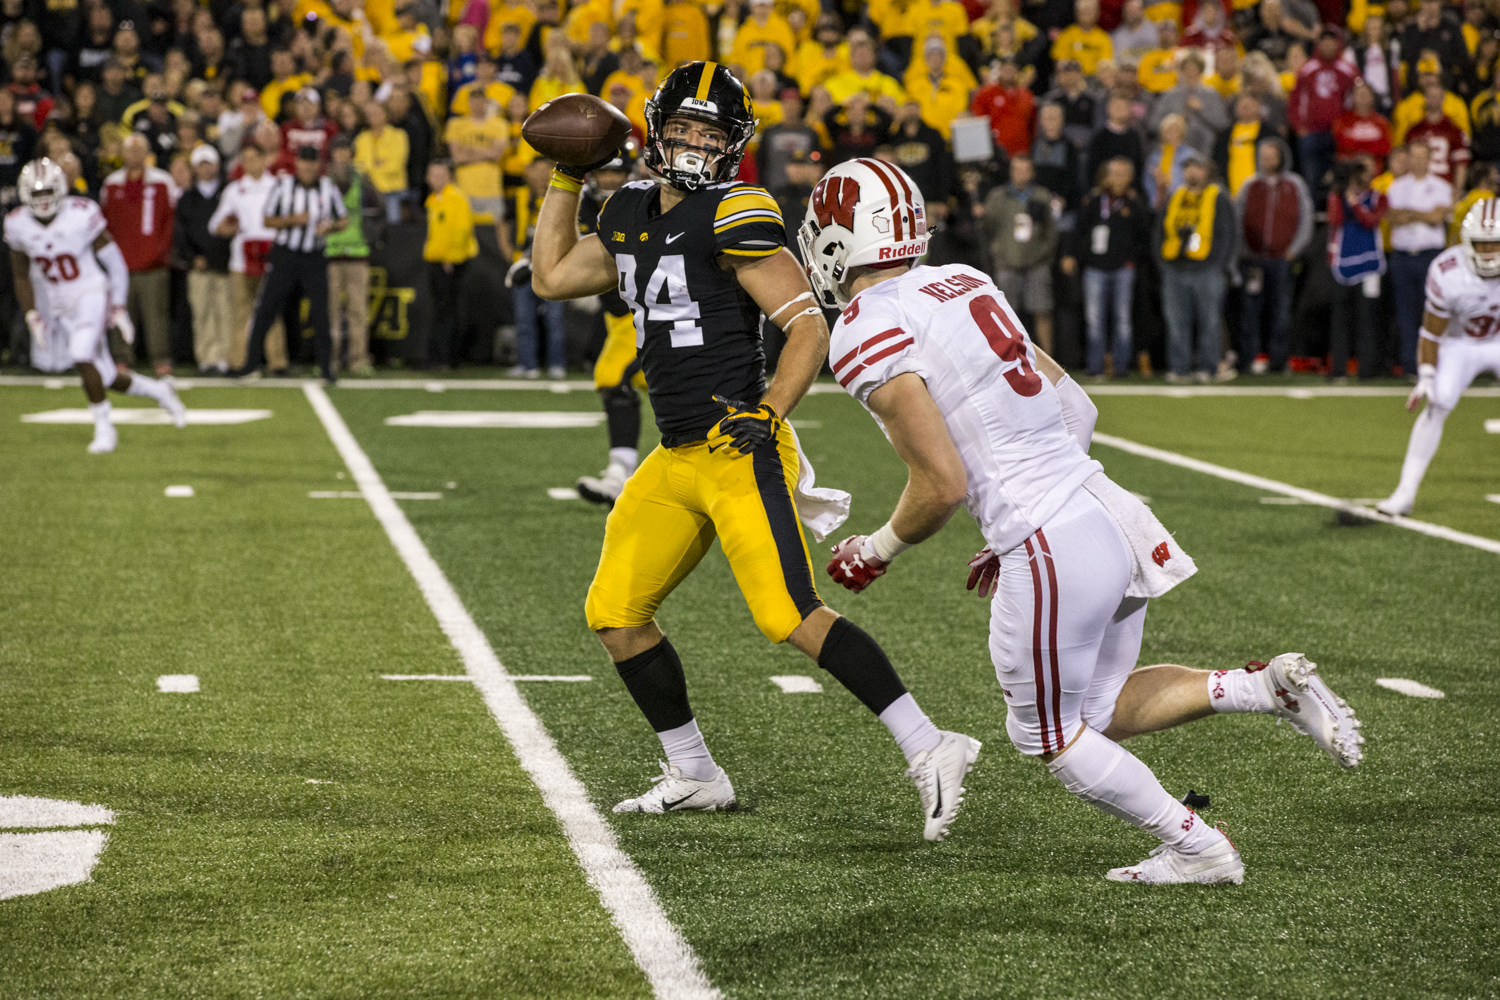 Iowa+wide+receiver+Nick+Easley+laterals+the+football+on+the+final+play+of+the+game+during+Iowa%27s+game+against+Wisconsin+at+Kinnick+Stadium+on+Saturday%2C+September+22%2C+2018.+The+Badgers+defeated+the+Hawkeyes+28-17.